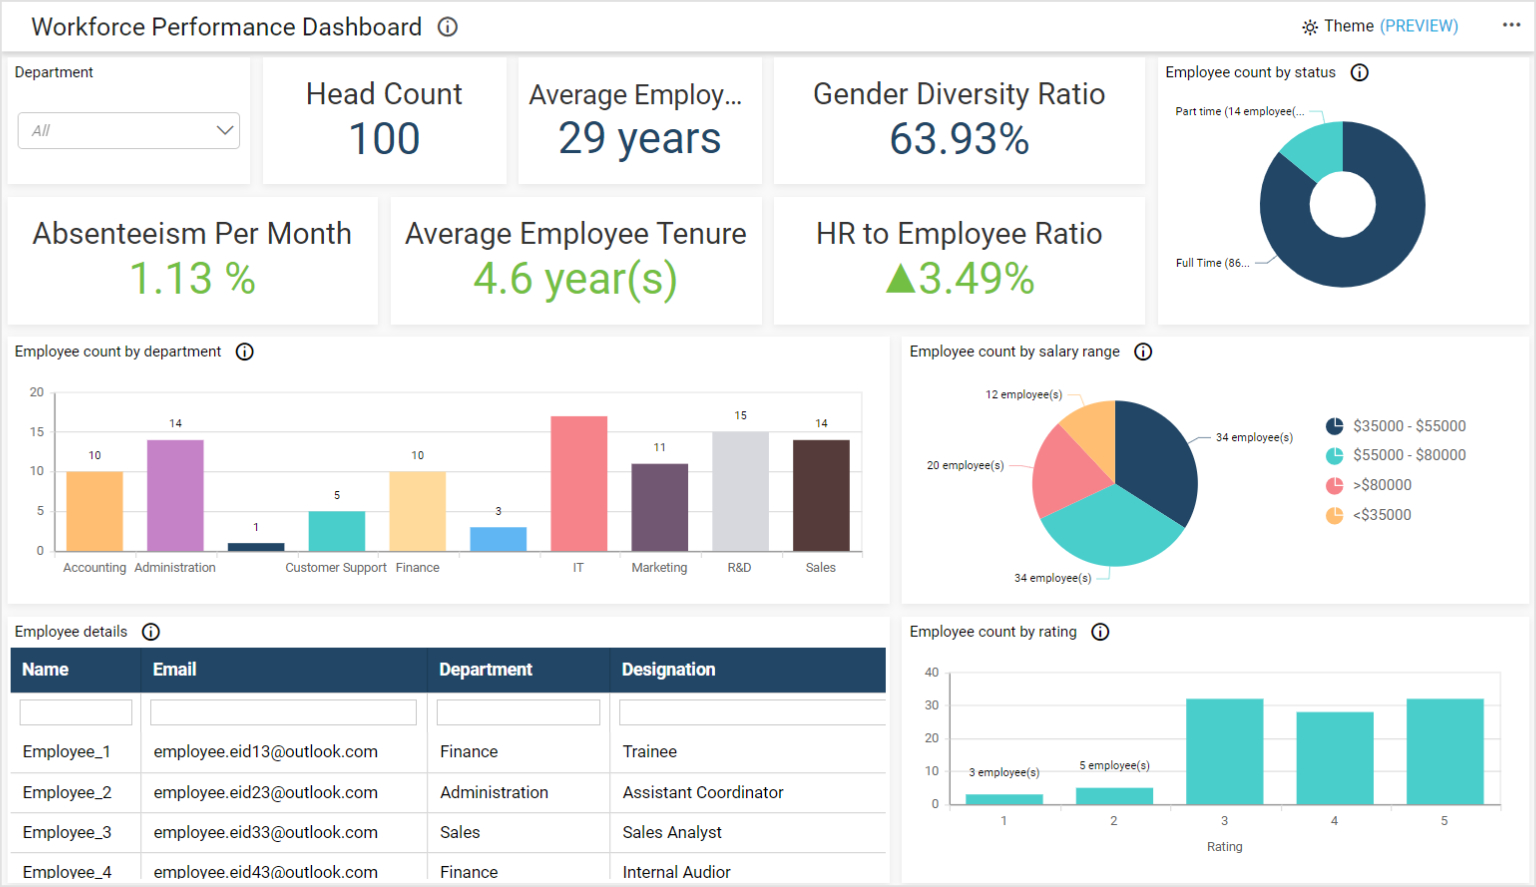 Workforce Performance Dashboard for Admin with All Department Employee's Data